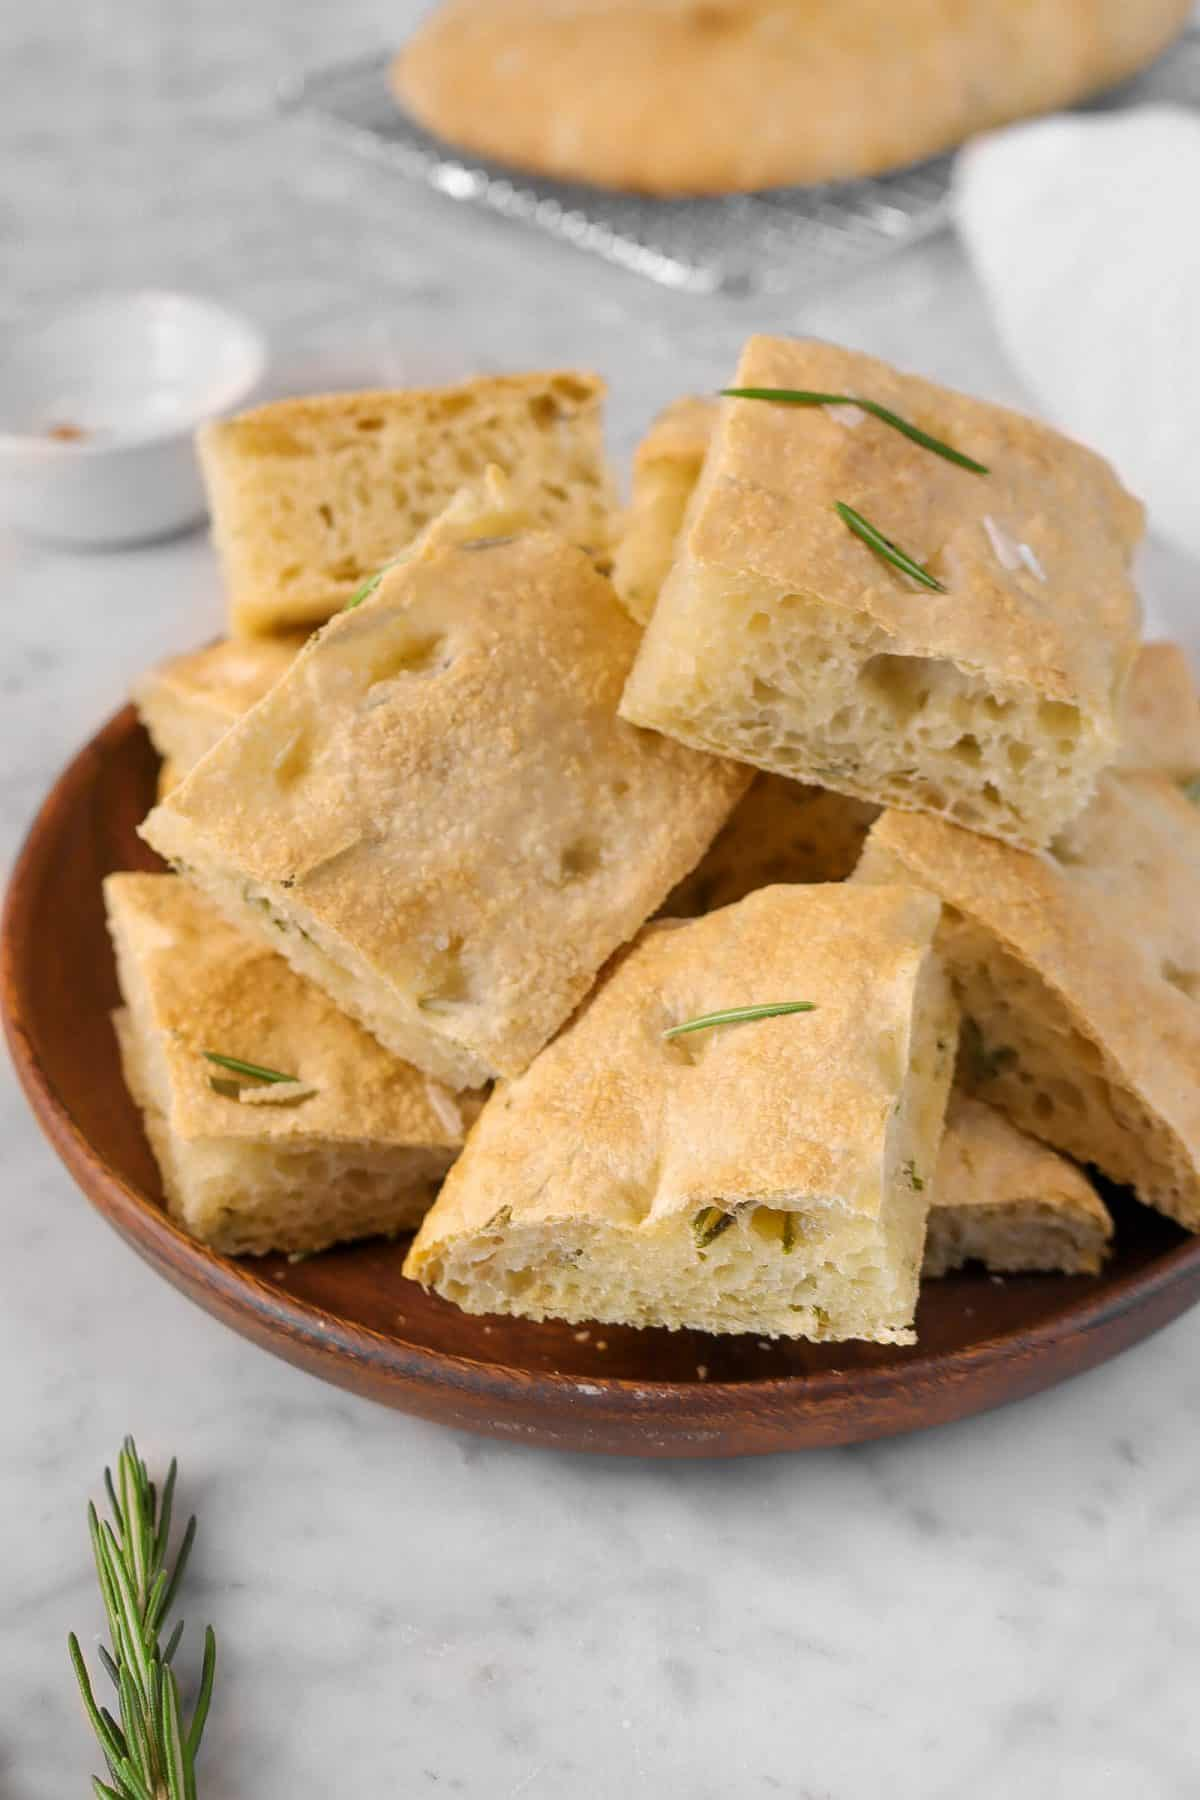 sliced rosemary focaccia on a wooden plate with a loaf of focaccia in the background